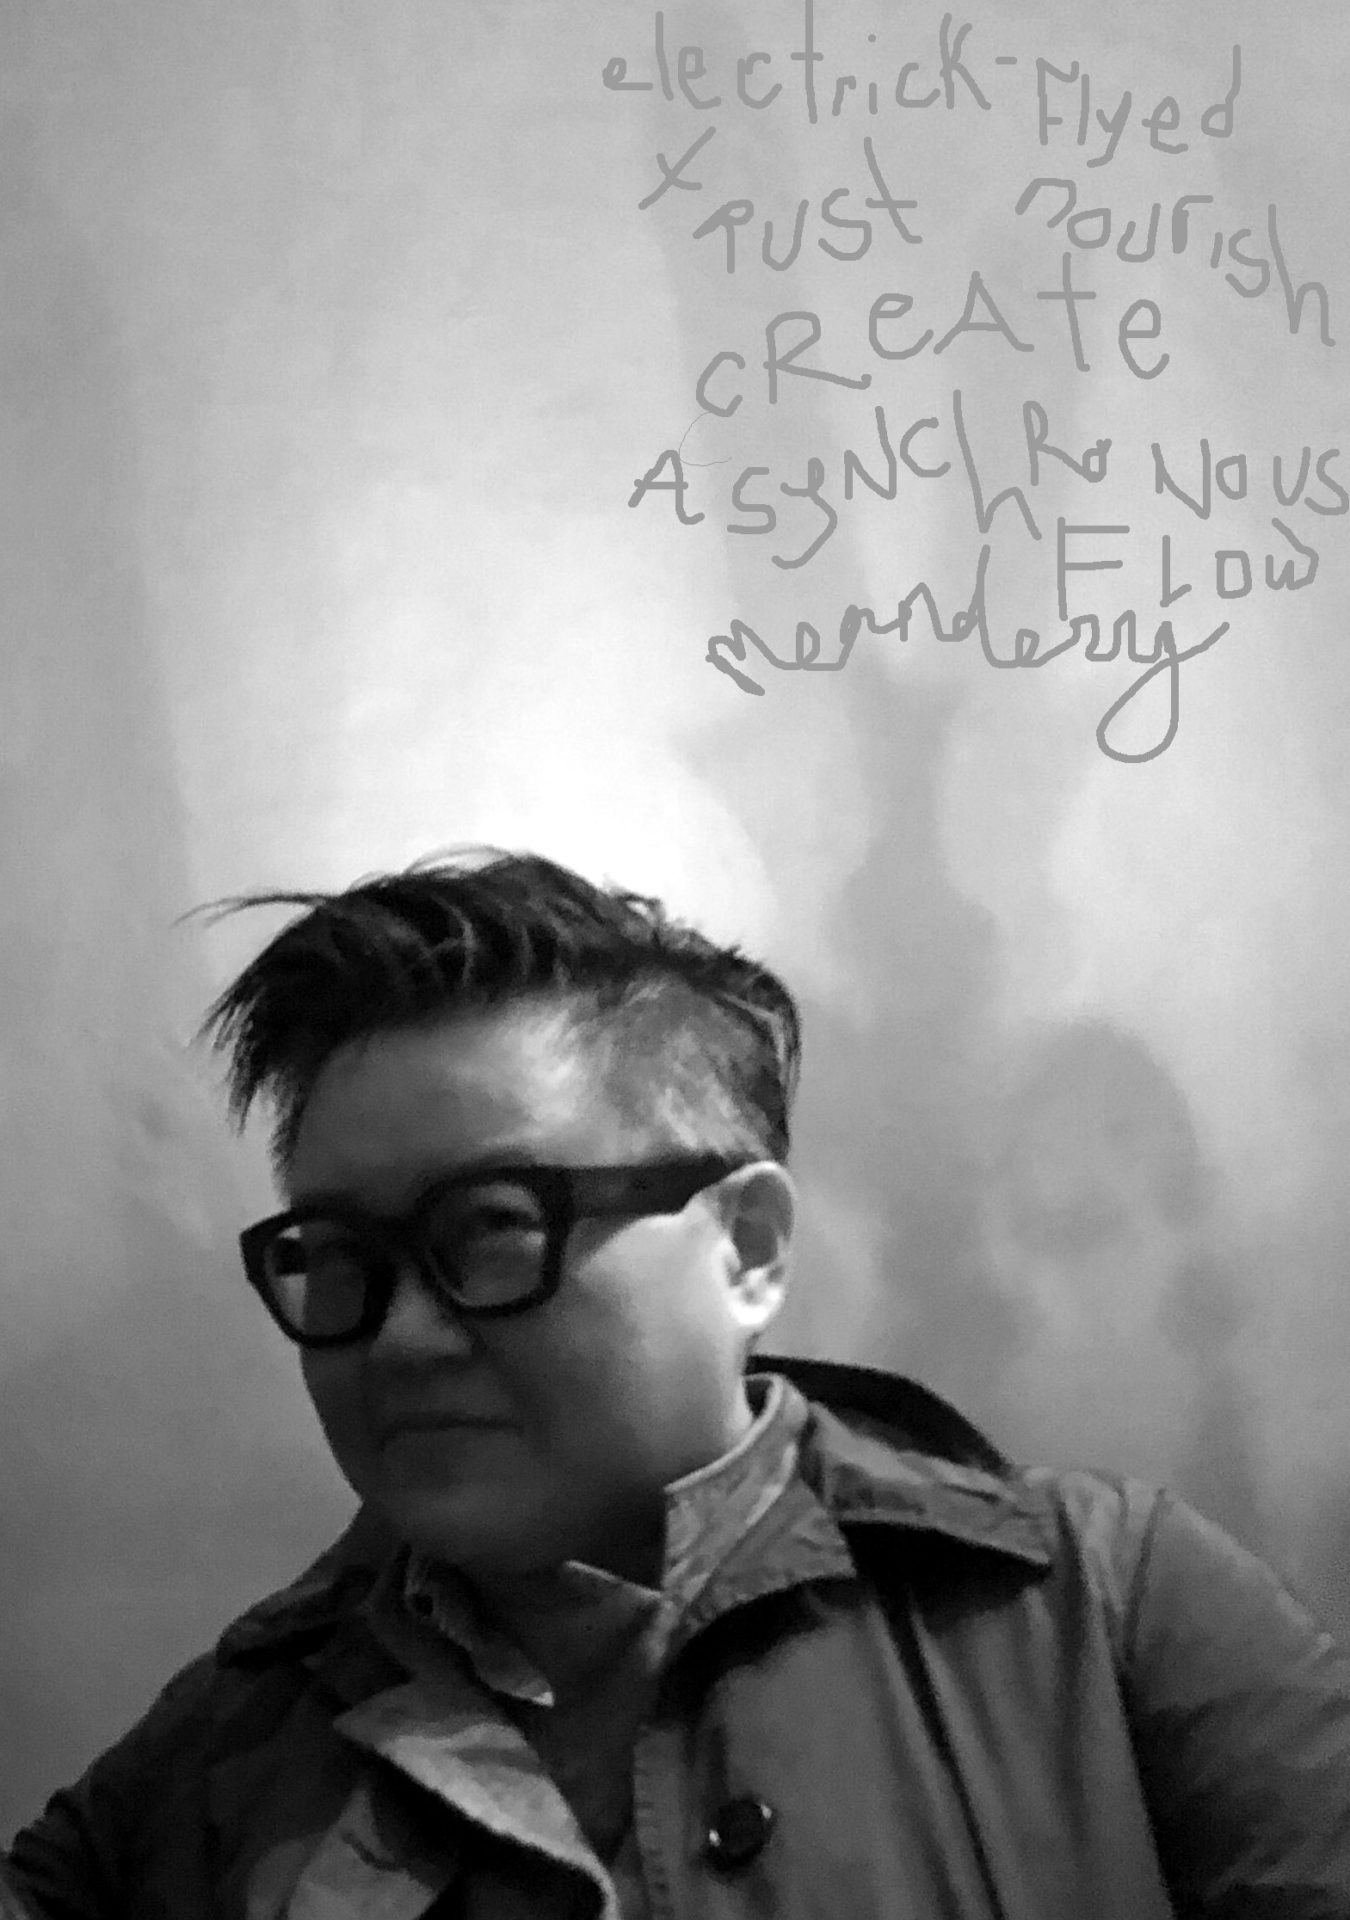 Kyoo Lee contributor photo, black and white photo, plain background with handwritting on the wall that says, electrick-flyed trust nourish create asynchronous flow meanderry